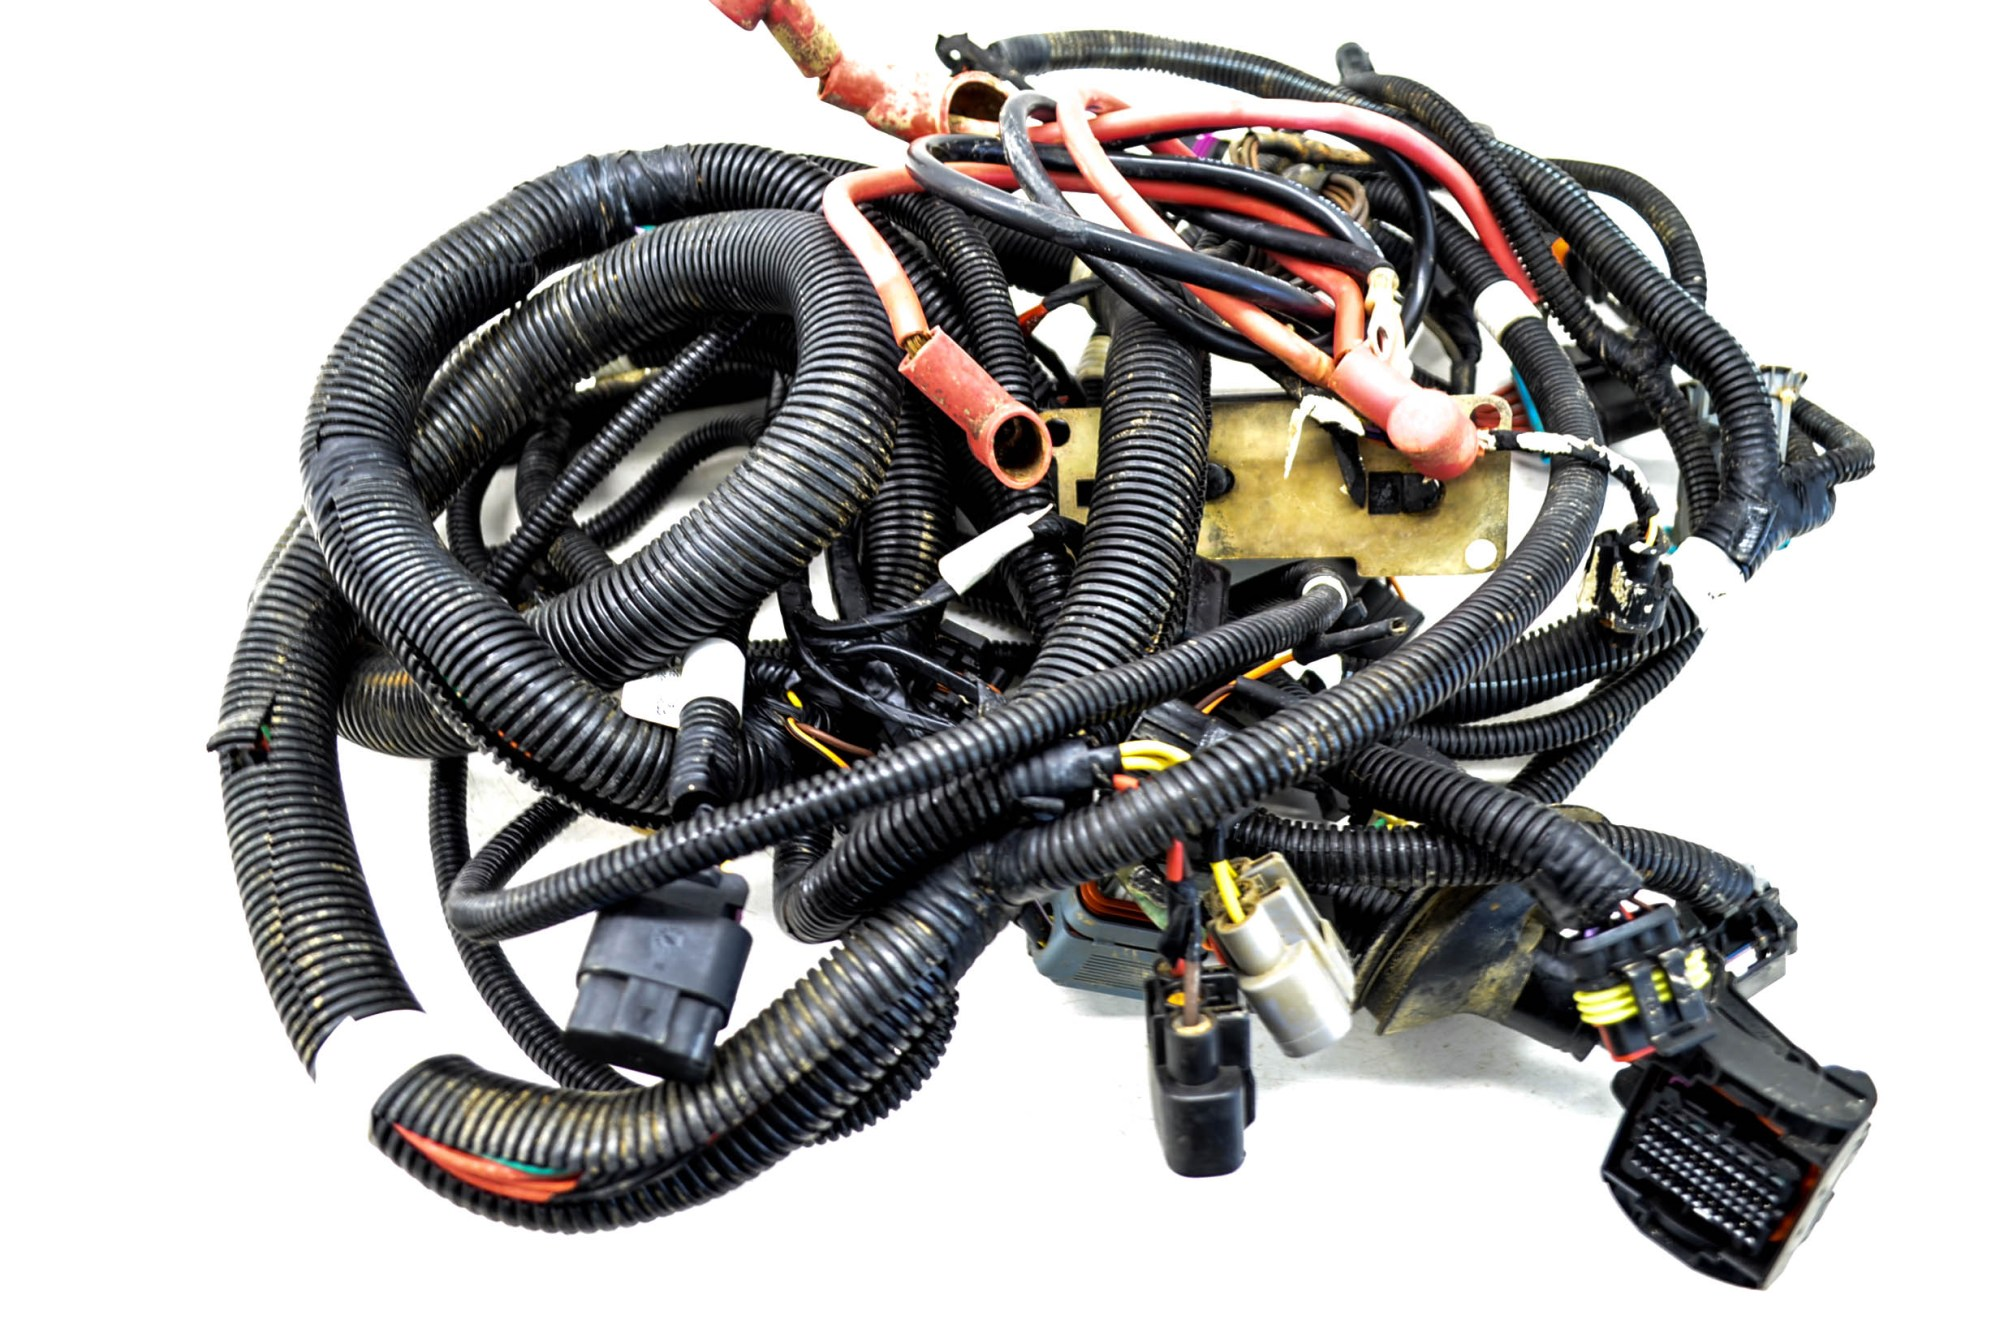 hight resolution of 14 polaris rzr 800 s 4x4 wire harness electrical wiring ebay polaris wiring harness problems 14